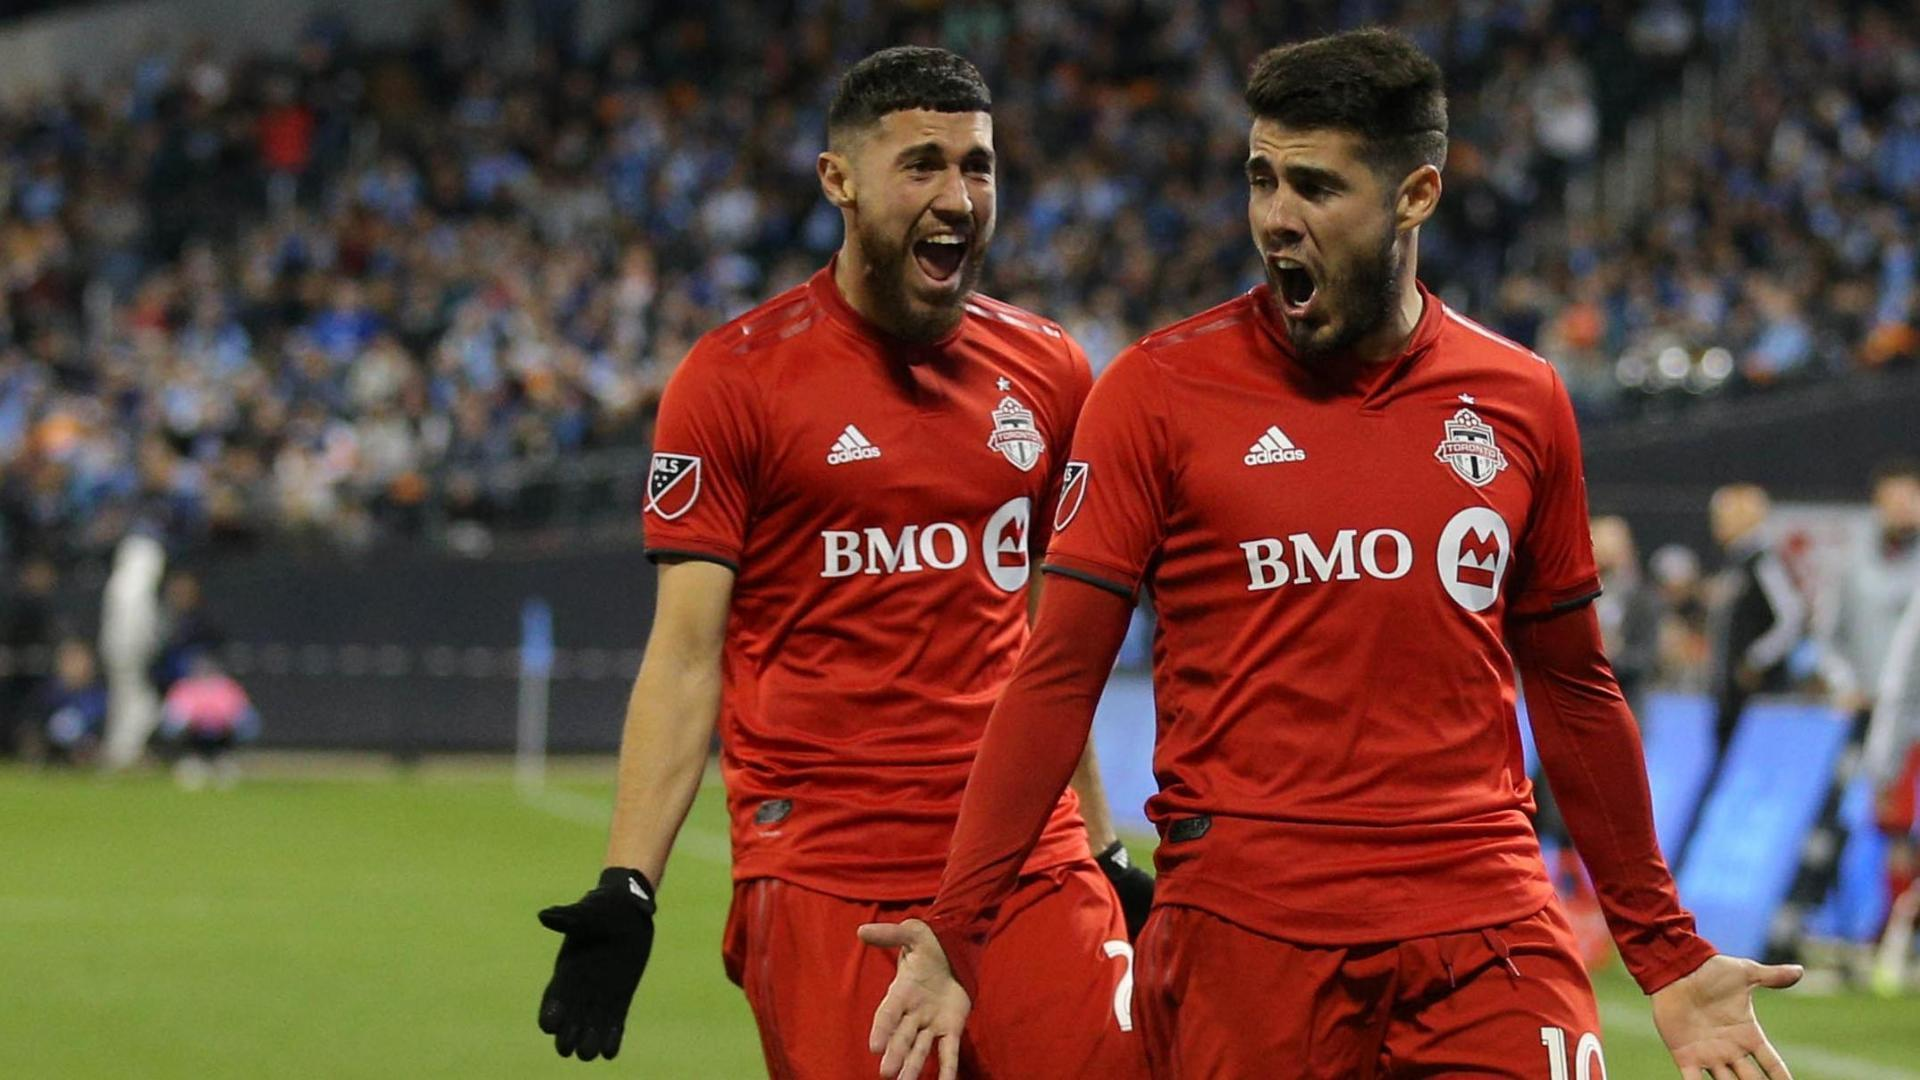 Toronto's Pozuelo scores on shocking NYCFC error